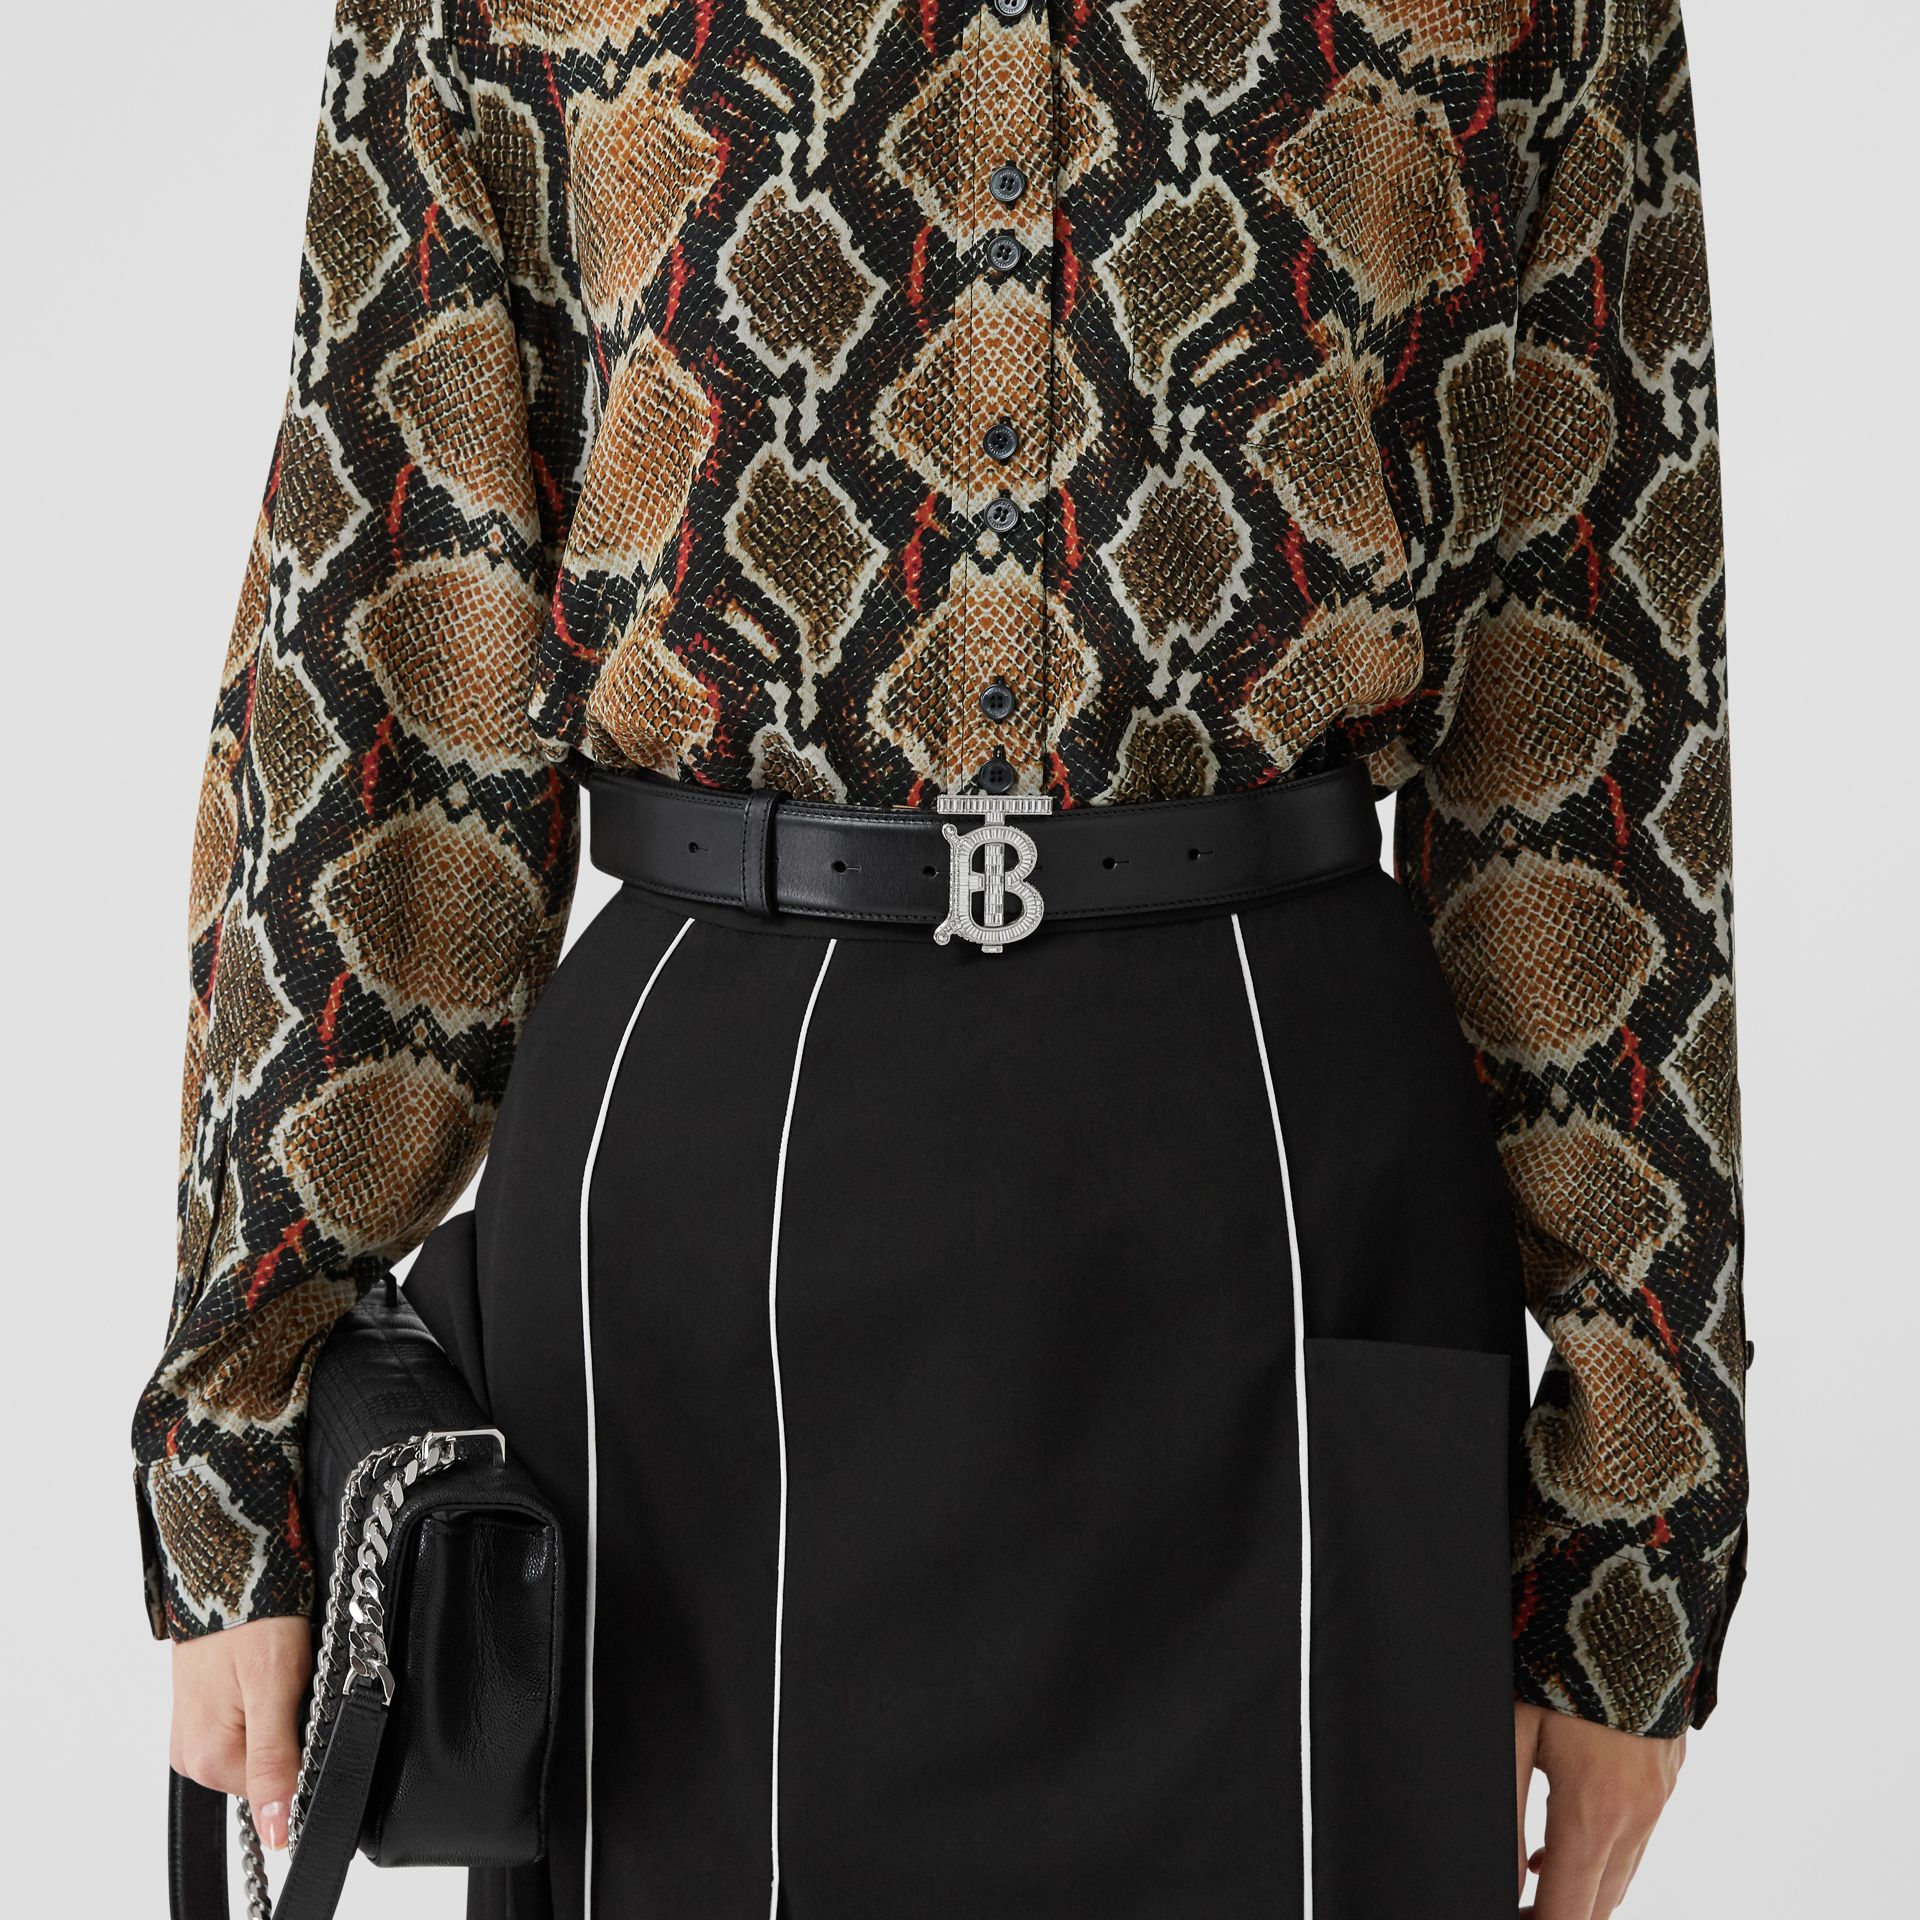 Crystal Monogram Motif Leather Belt in Black/palladium - Women | Burberry United States - gallery image 2